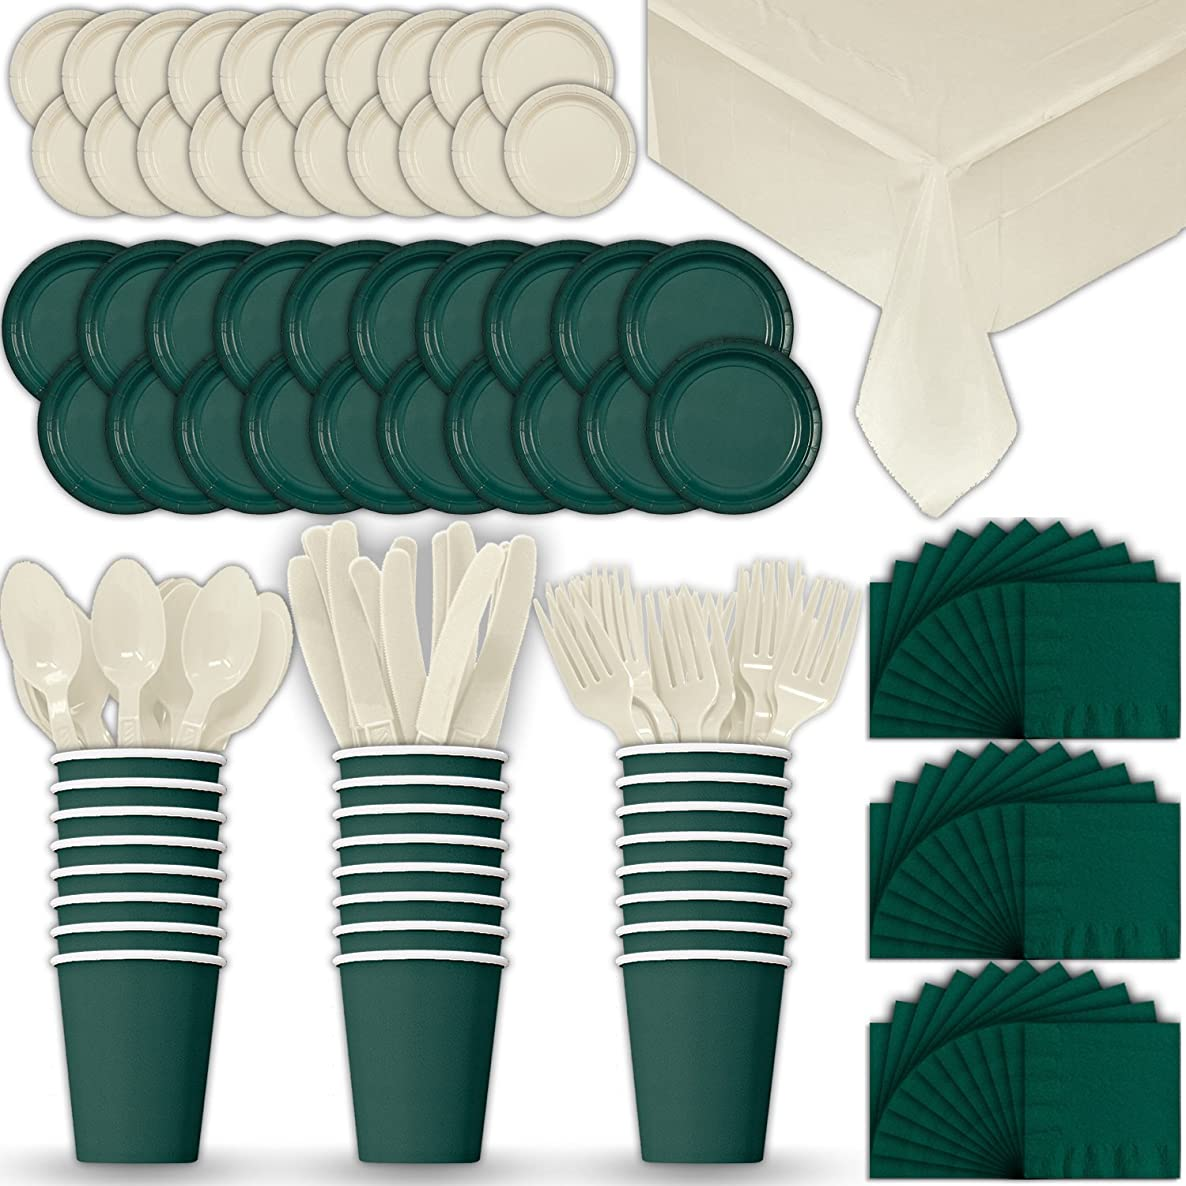 Paper Tableware Set for 24 - Hunter Green & Cream - Dinner and Dessert Plates, Cups, Napkins, Cutlery (Spoons, Forks, Knives), and Tablecloths - Full Two-Tone Party Supplies Pack